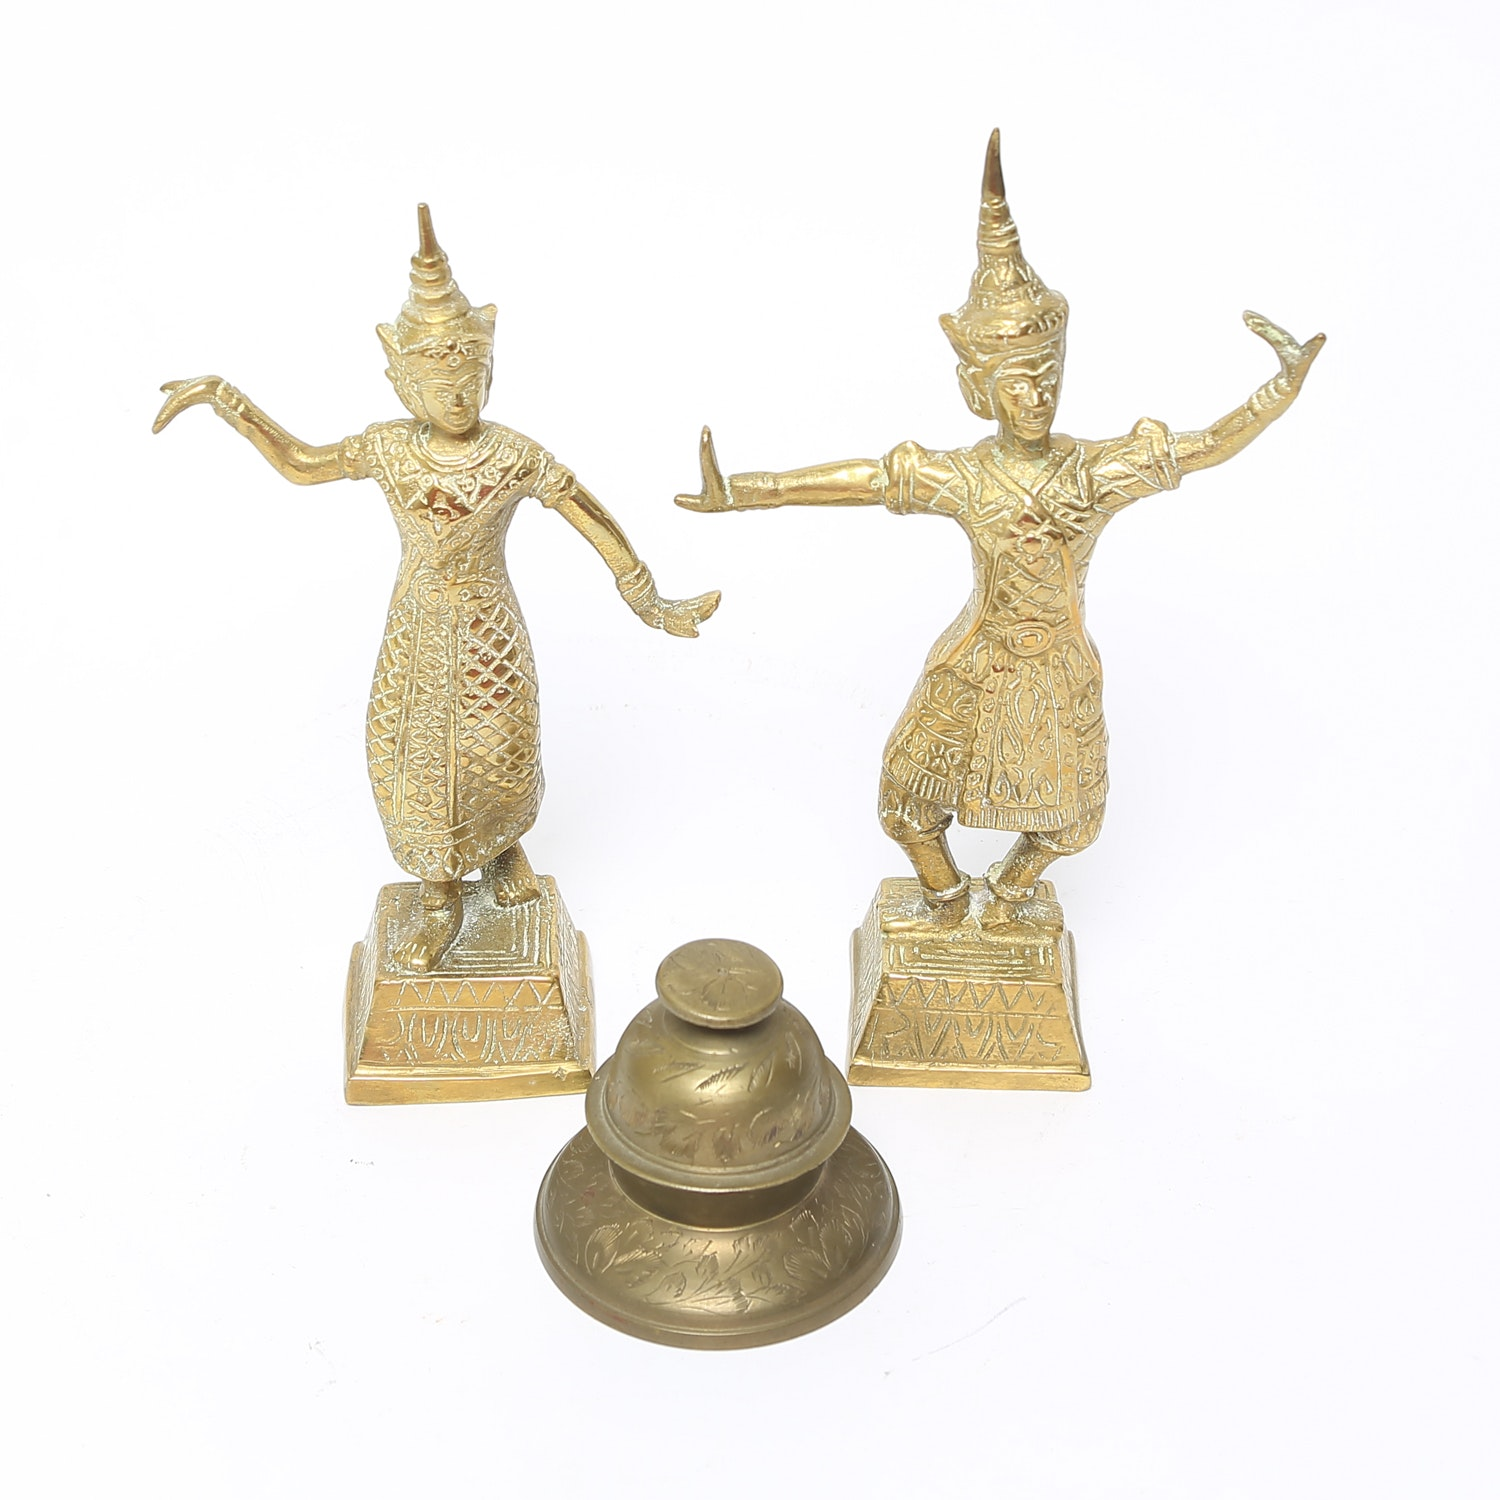 Grouping of Brass Indonesian Dancers and Bell